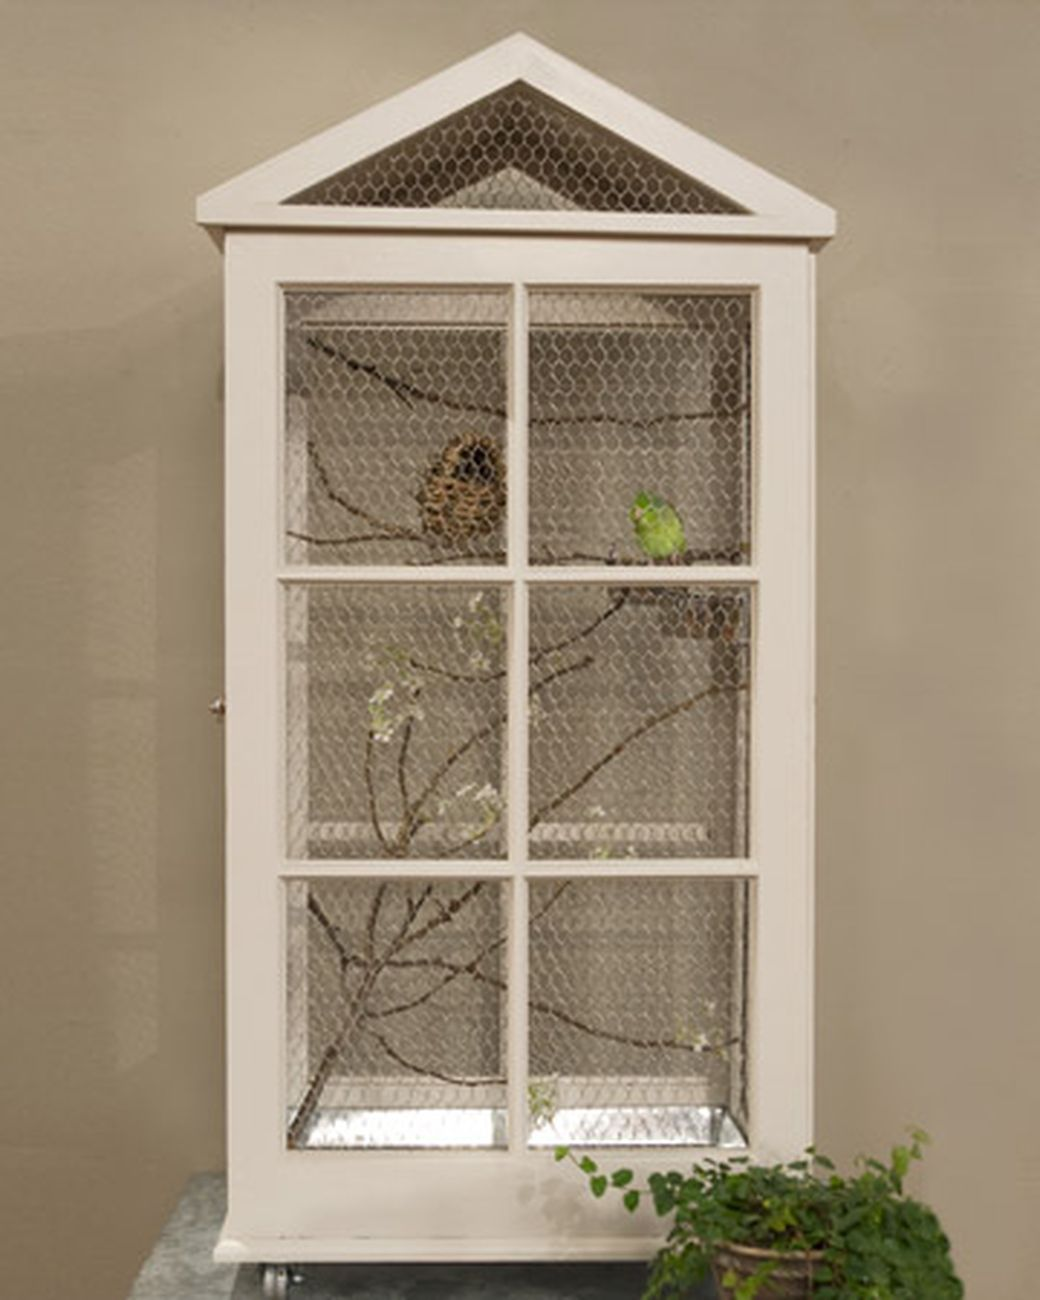 Build your favorite bird a beautiful birdcage using salvaged windows on